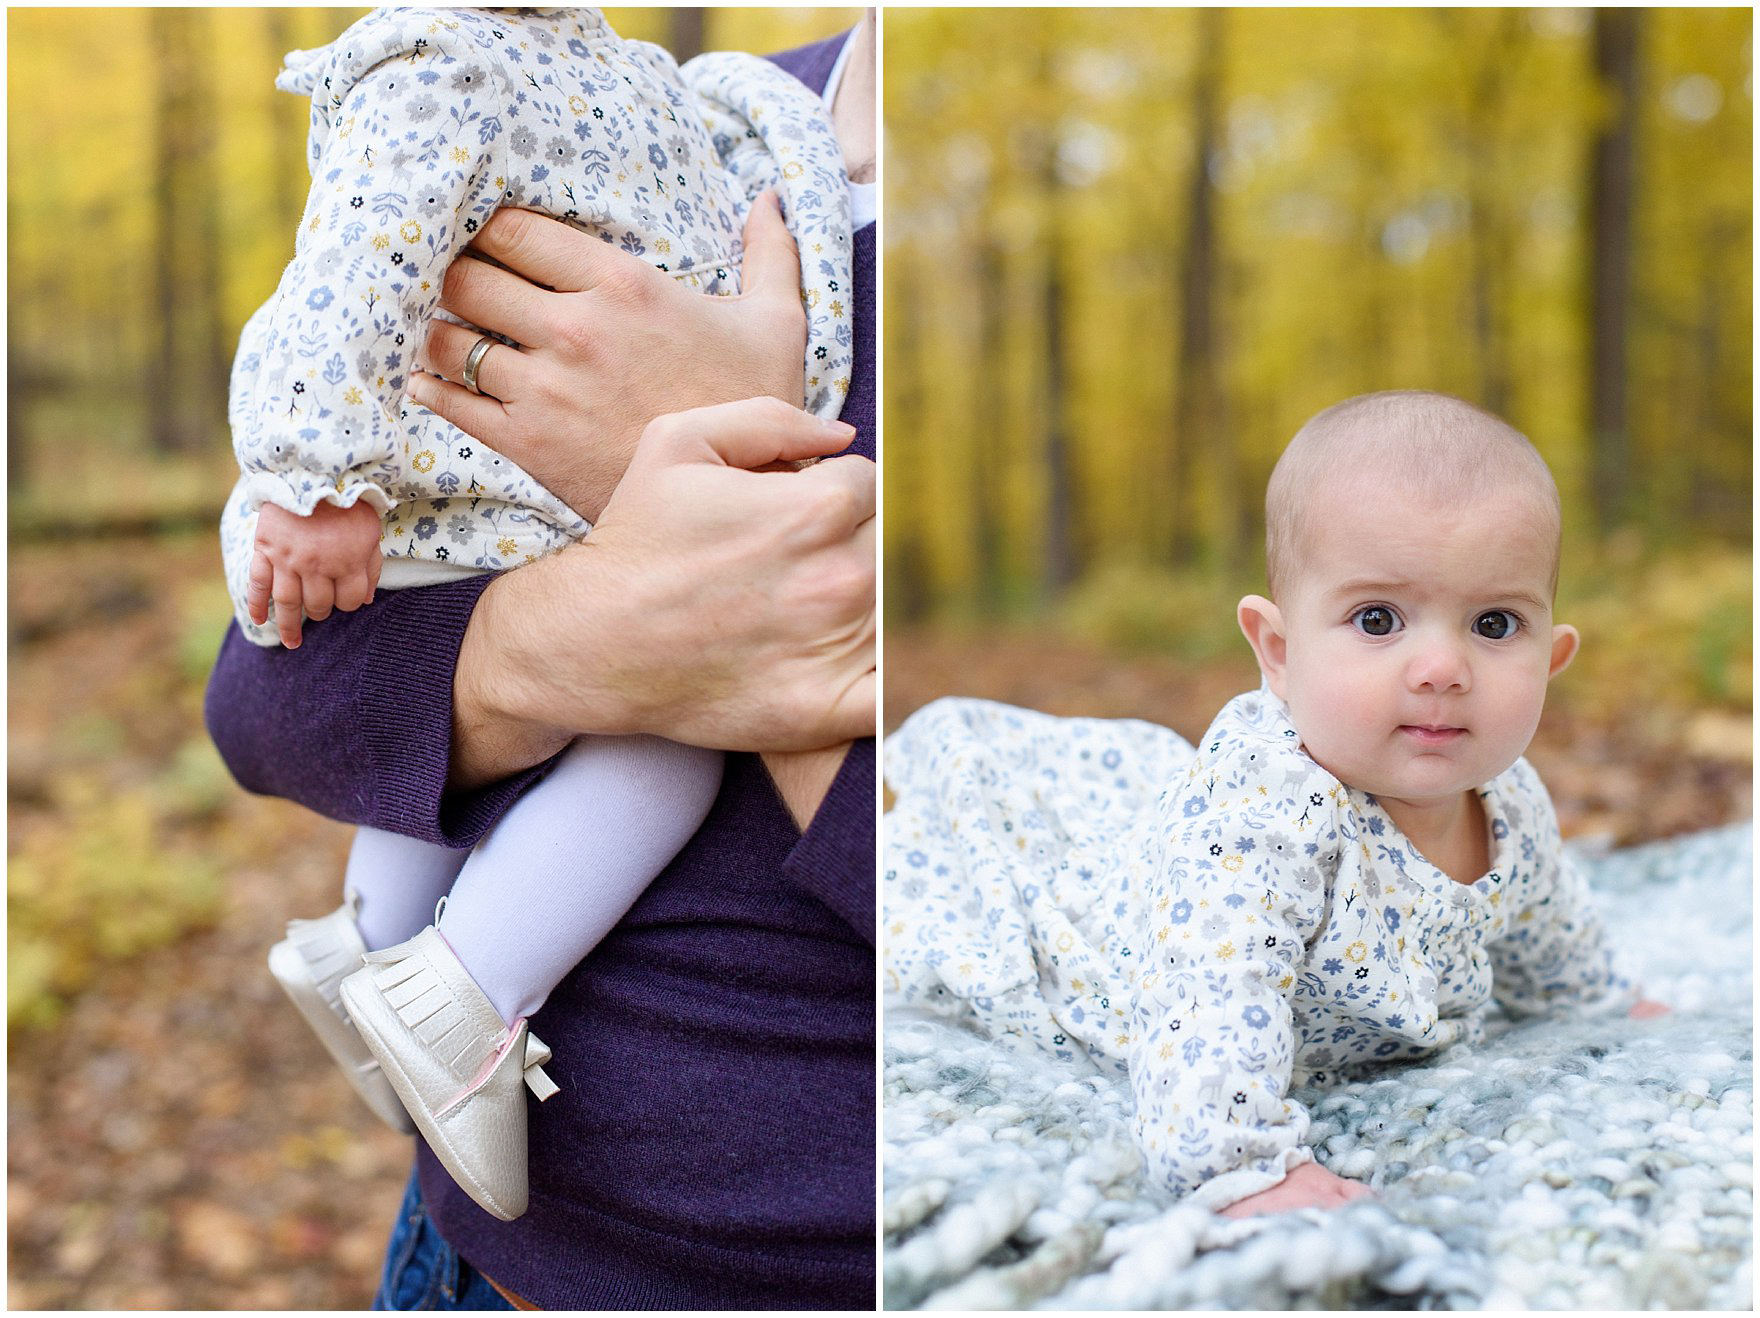 A baby girl poses against a backdrop of golden leaves during a Morton Arboretum fall family session.